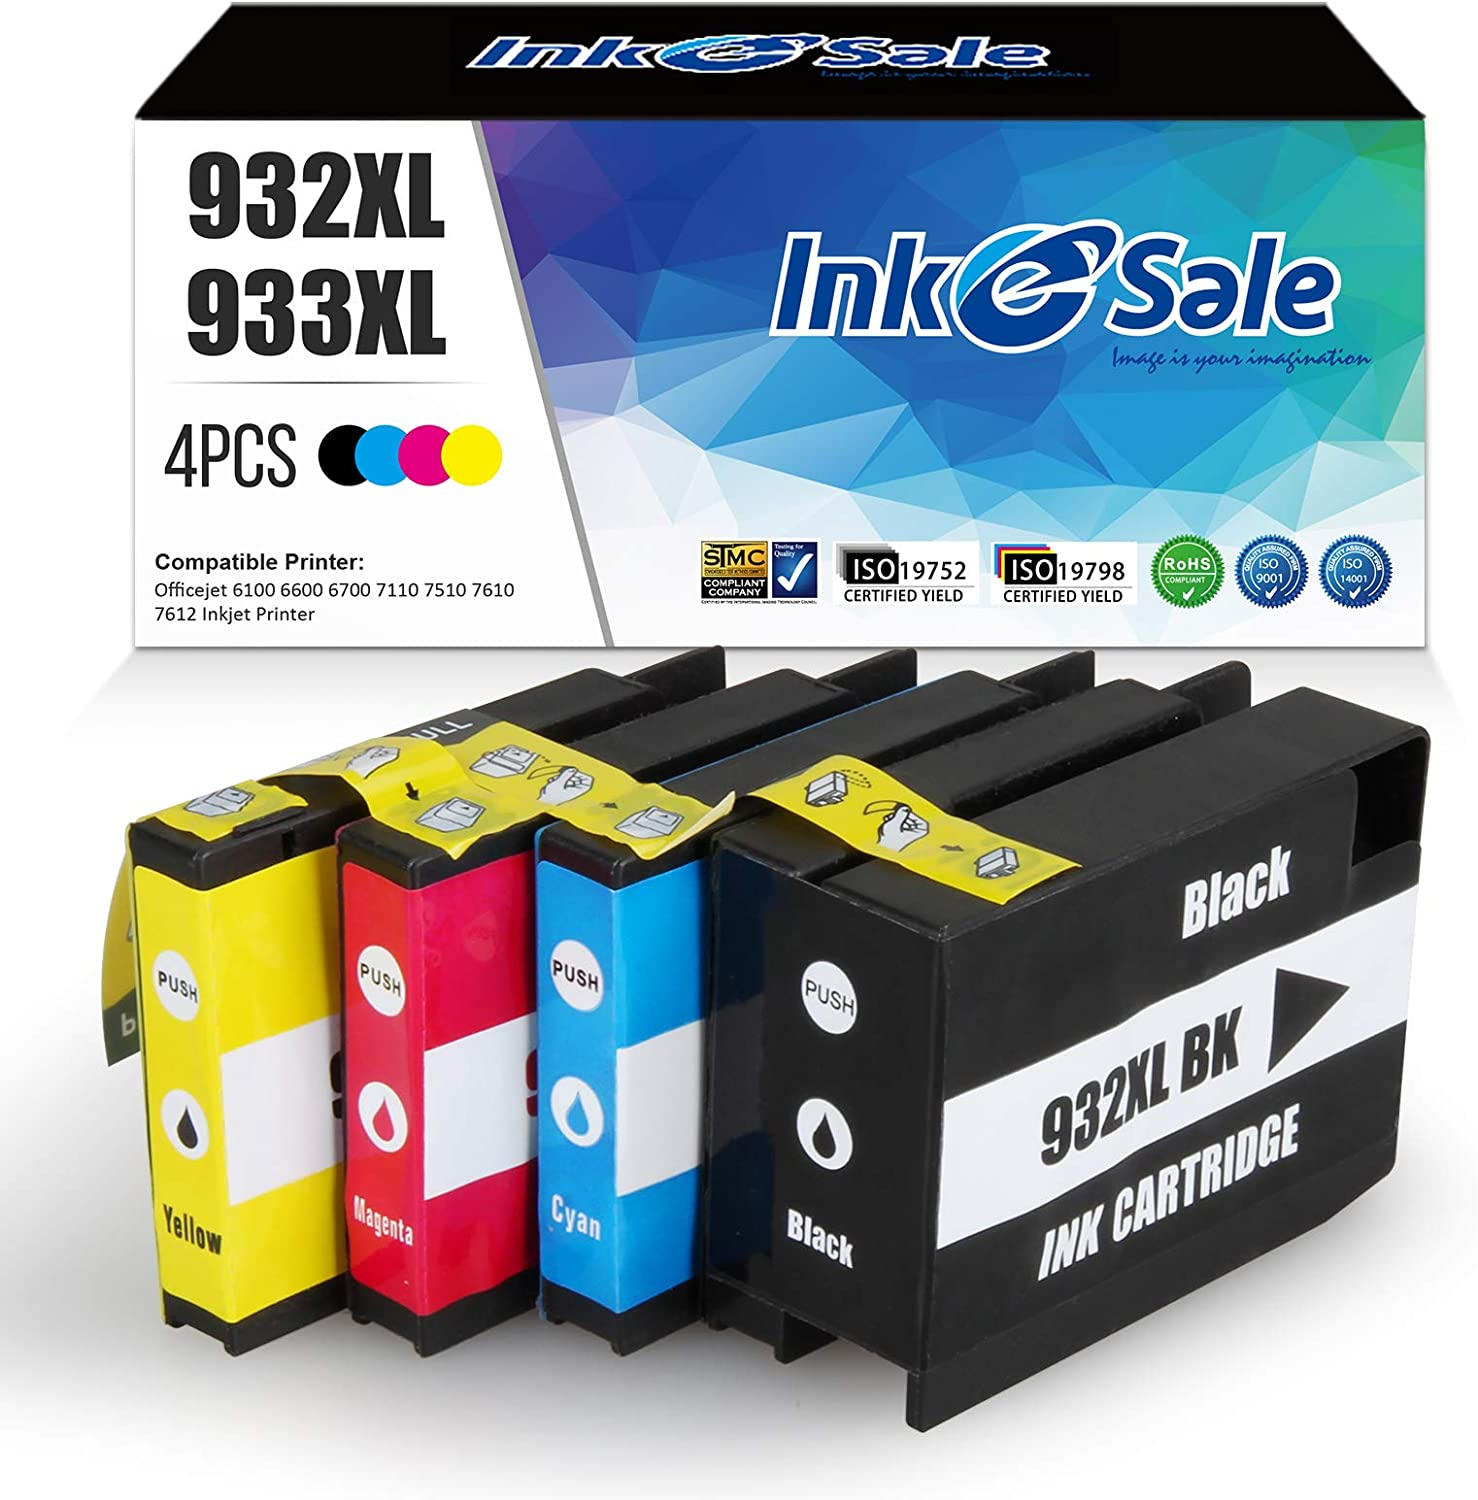 INK E-SALE Compatible 932 XL 933 XL Ink Cartridge Replacement for HP 932XL 933XL 932 933 combo pack for HP Officejet 6700 6600 6100 7610 7110 7612 7610 7510 Printer (4 Pack, Black Cyan Magenta Yellow)